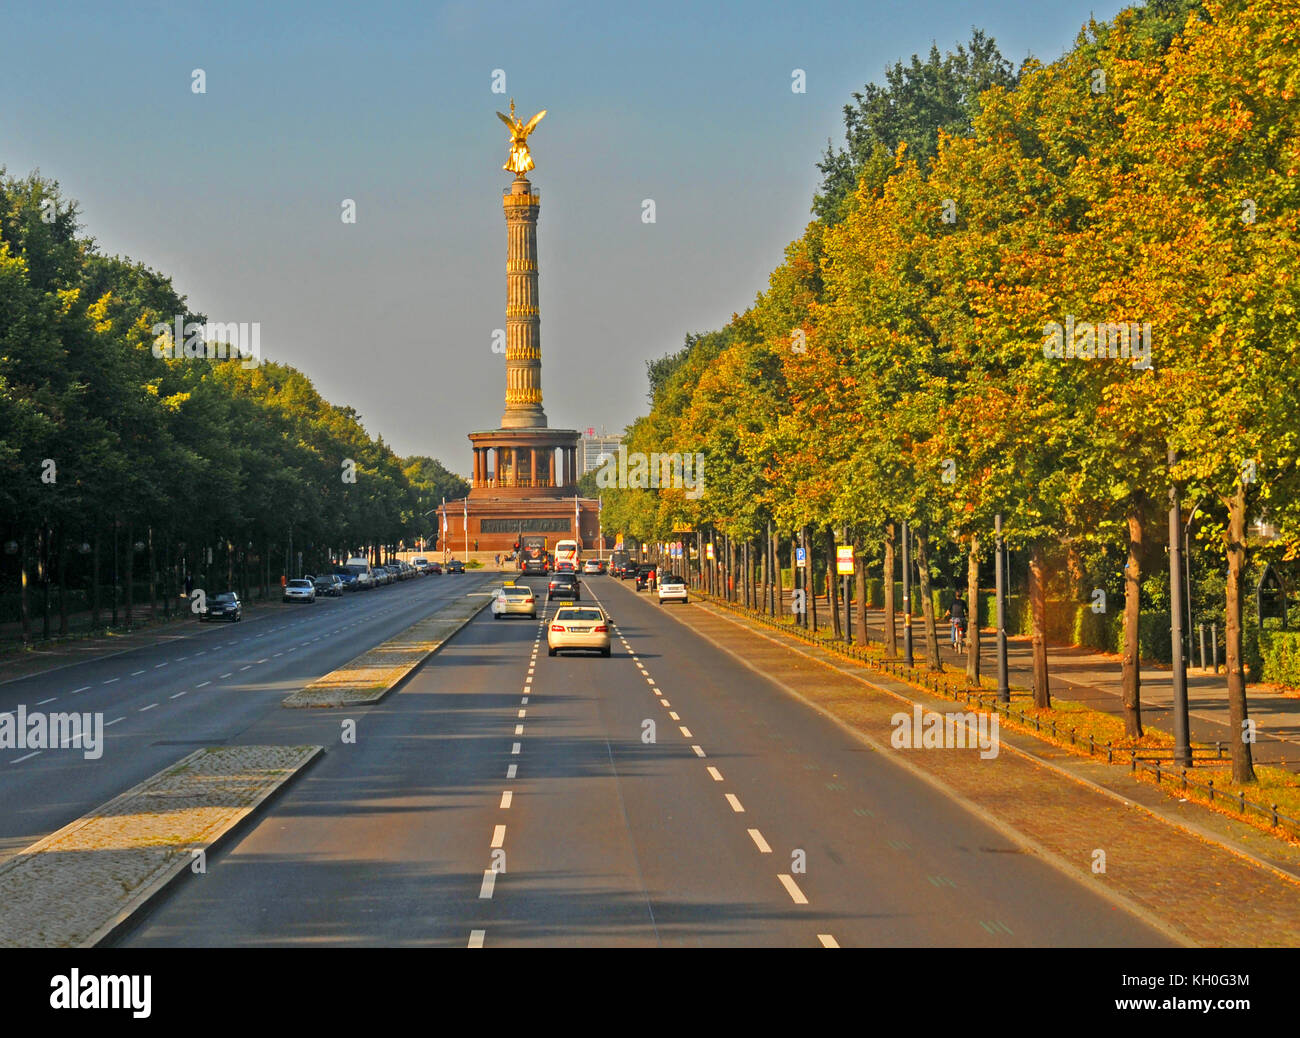 berlin germany grosser tiergarten stock photos berlin germany grosser tiergarten stock images. Black Bedroom Furniture Sets. Home Design Ideas